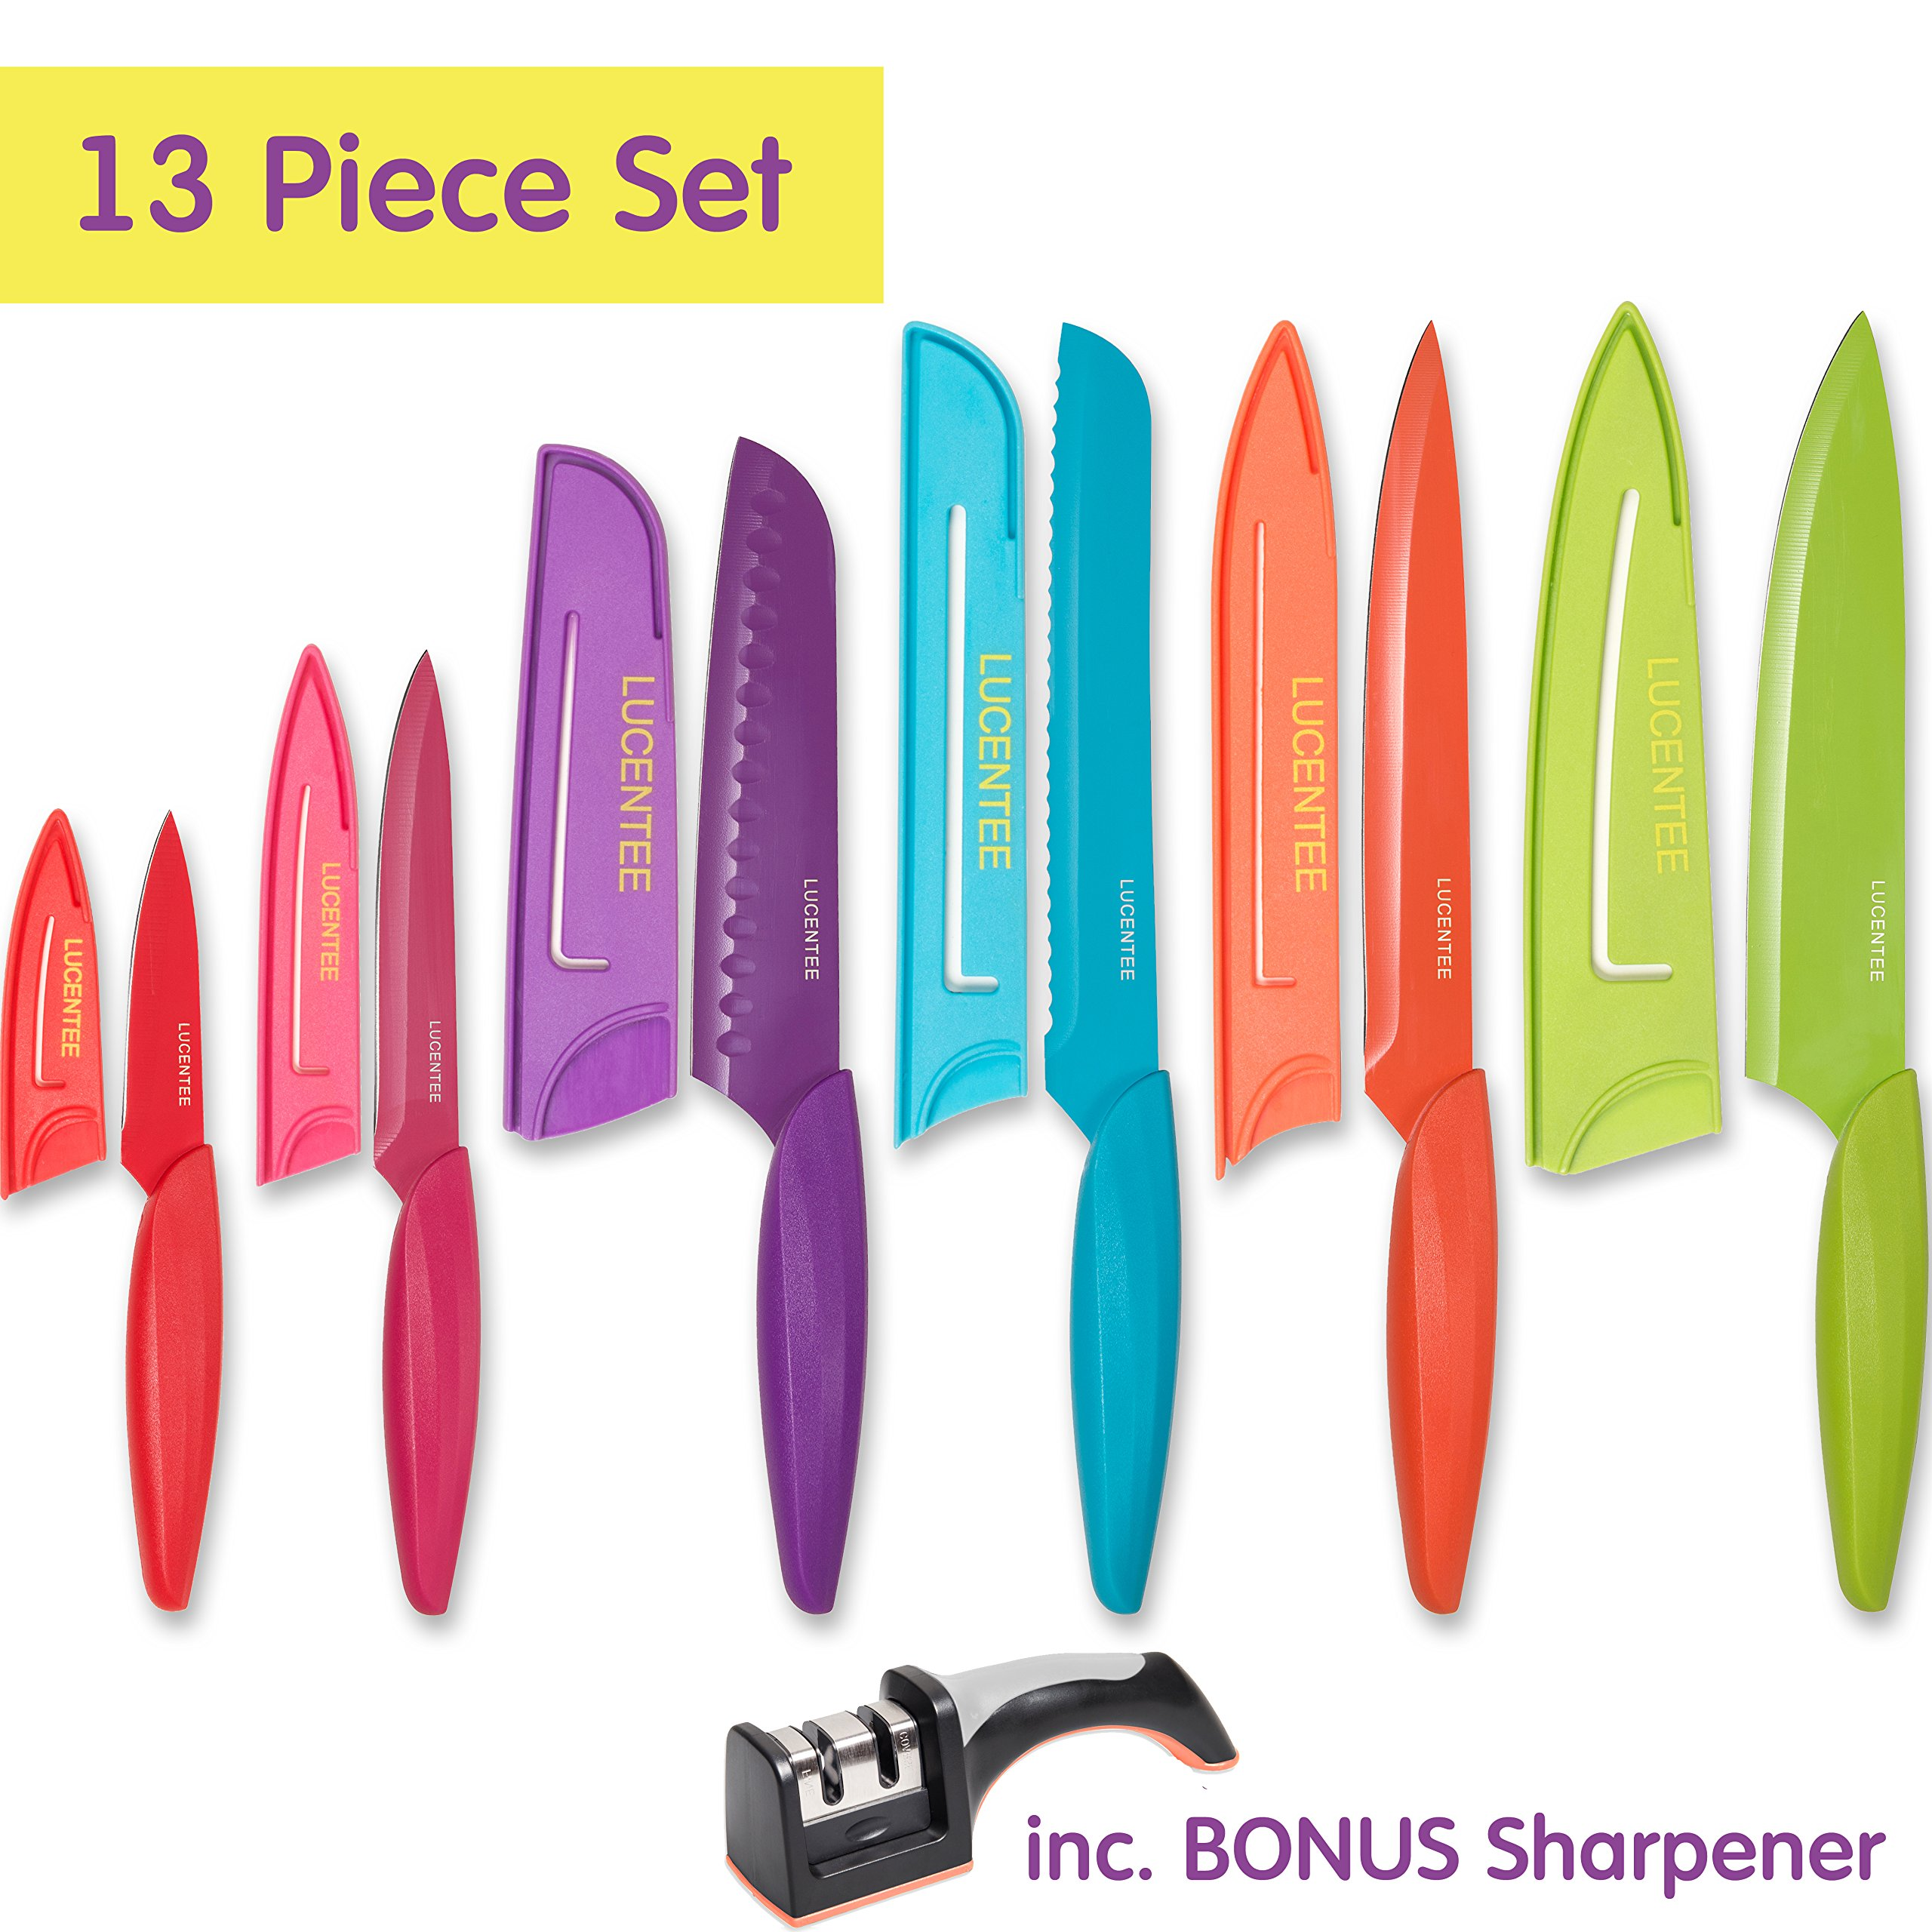 Stainless Steel Kitchen Knife Set – 13 Piece - BONUS Sharpener - 6 Knives - Chef, Bread, Carving, Paring, Utility and Santoku Knife - Cutlery Sets - Multicolor by Lucentee by LUCENTEE (Image #2)